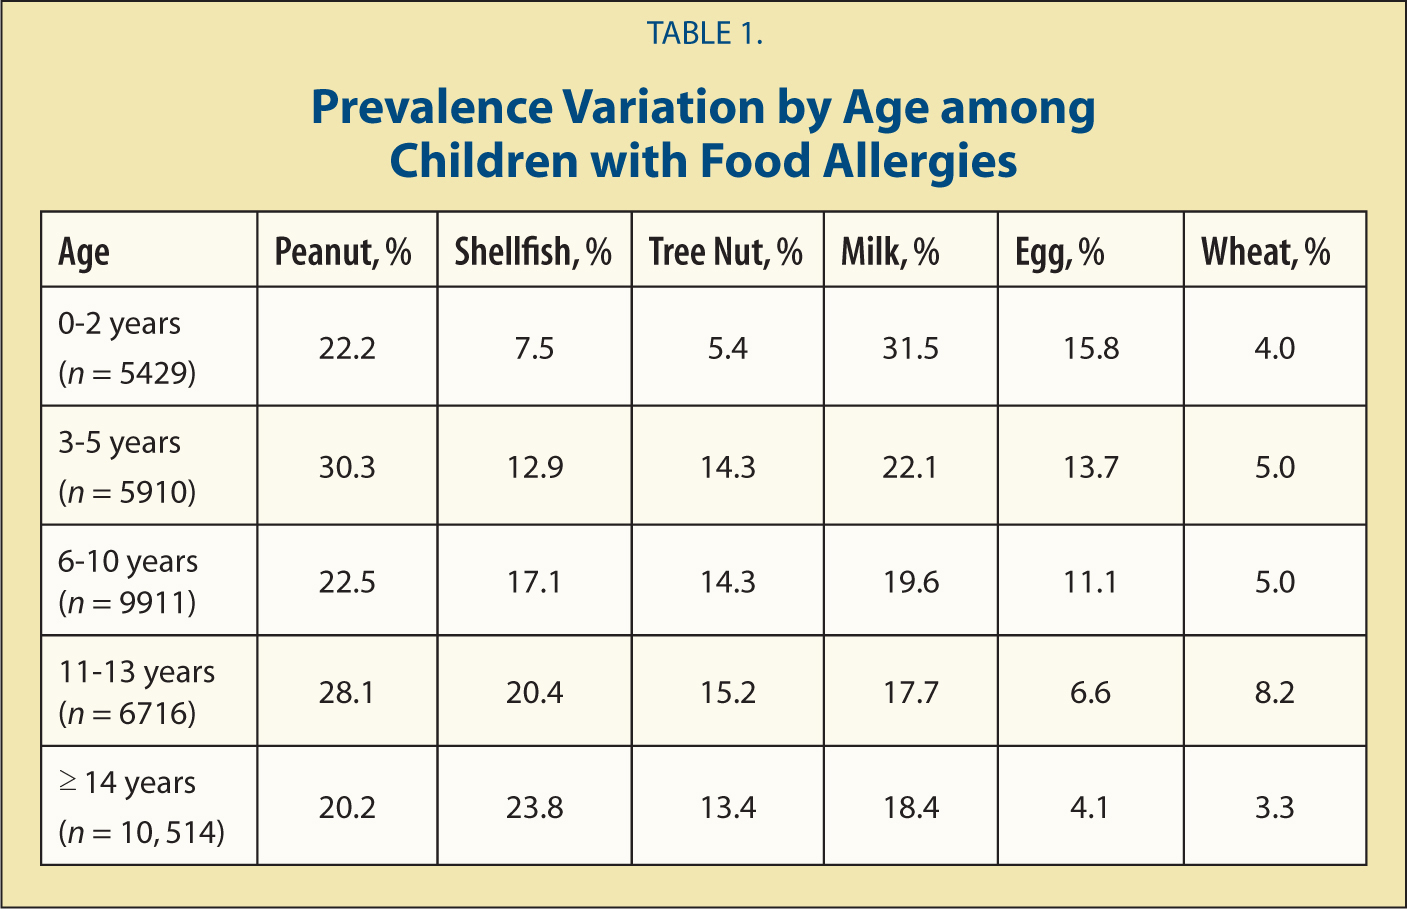 Prevalence Variation by Age among Children with Food Allergies